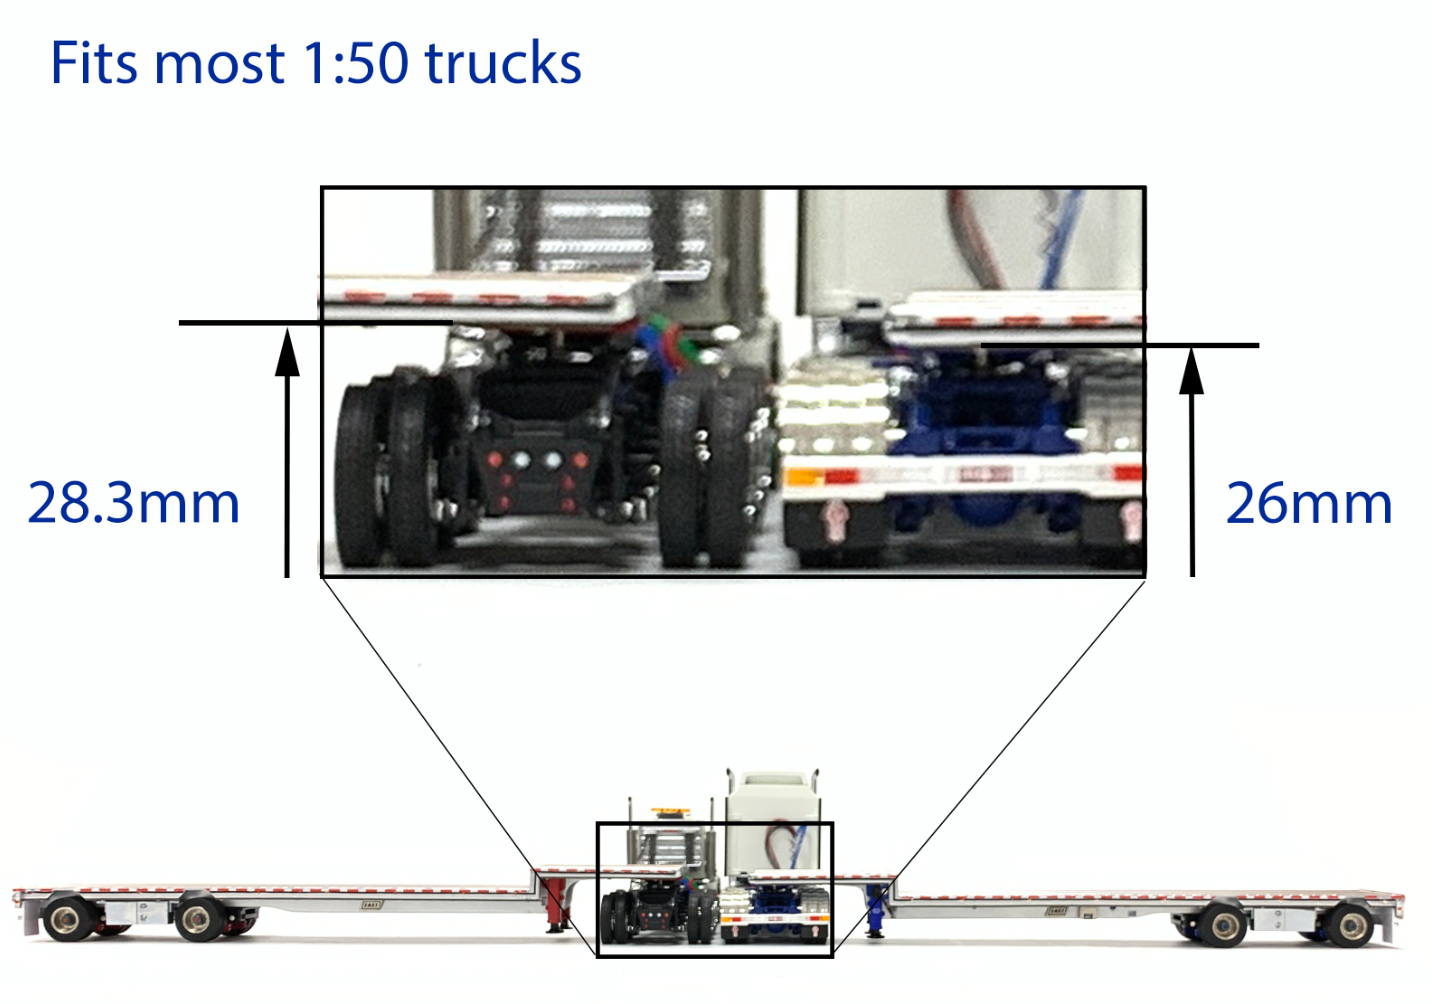 wbr027-fifth-wheel.png